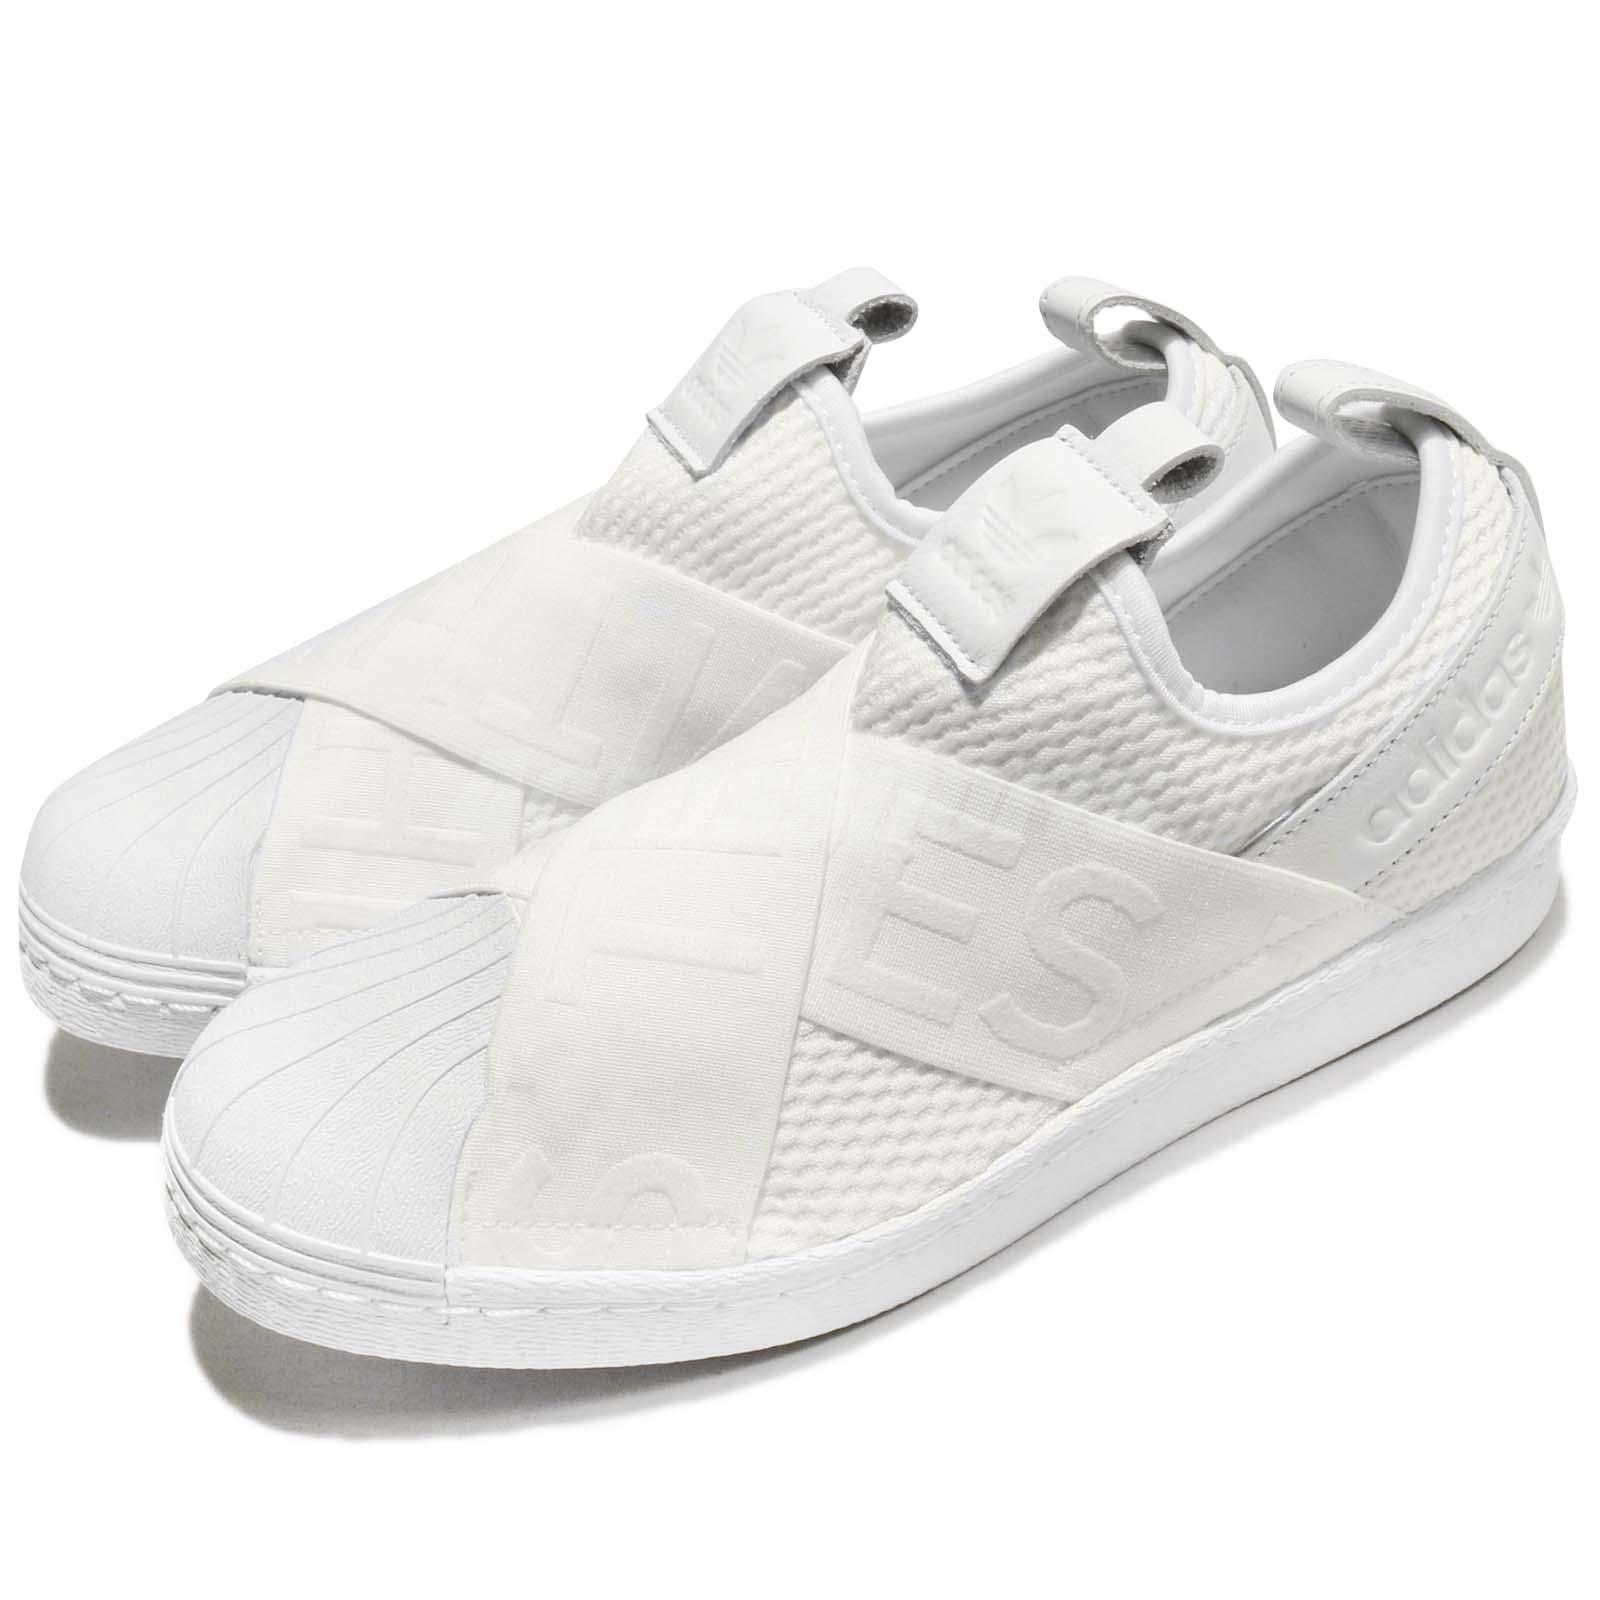 Details about adidas Originals Superstar SlipOn W White Women Shoes  Sneakers Trainers CQ2381 385500006c9c